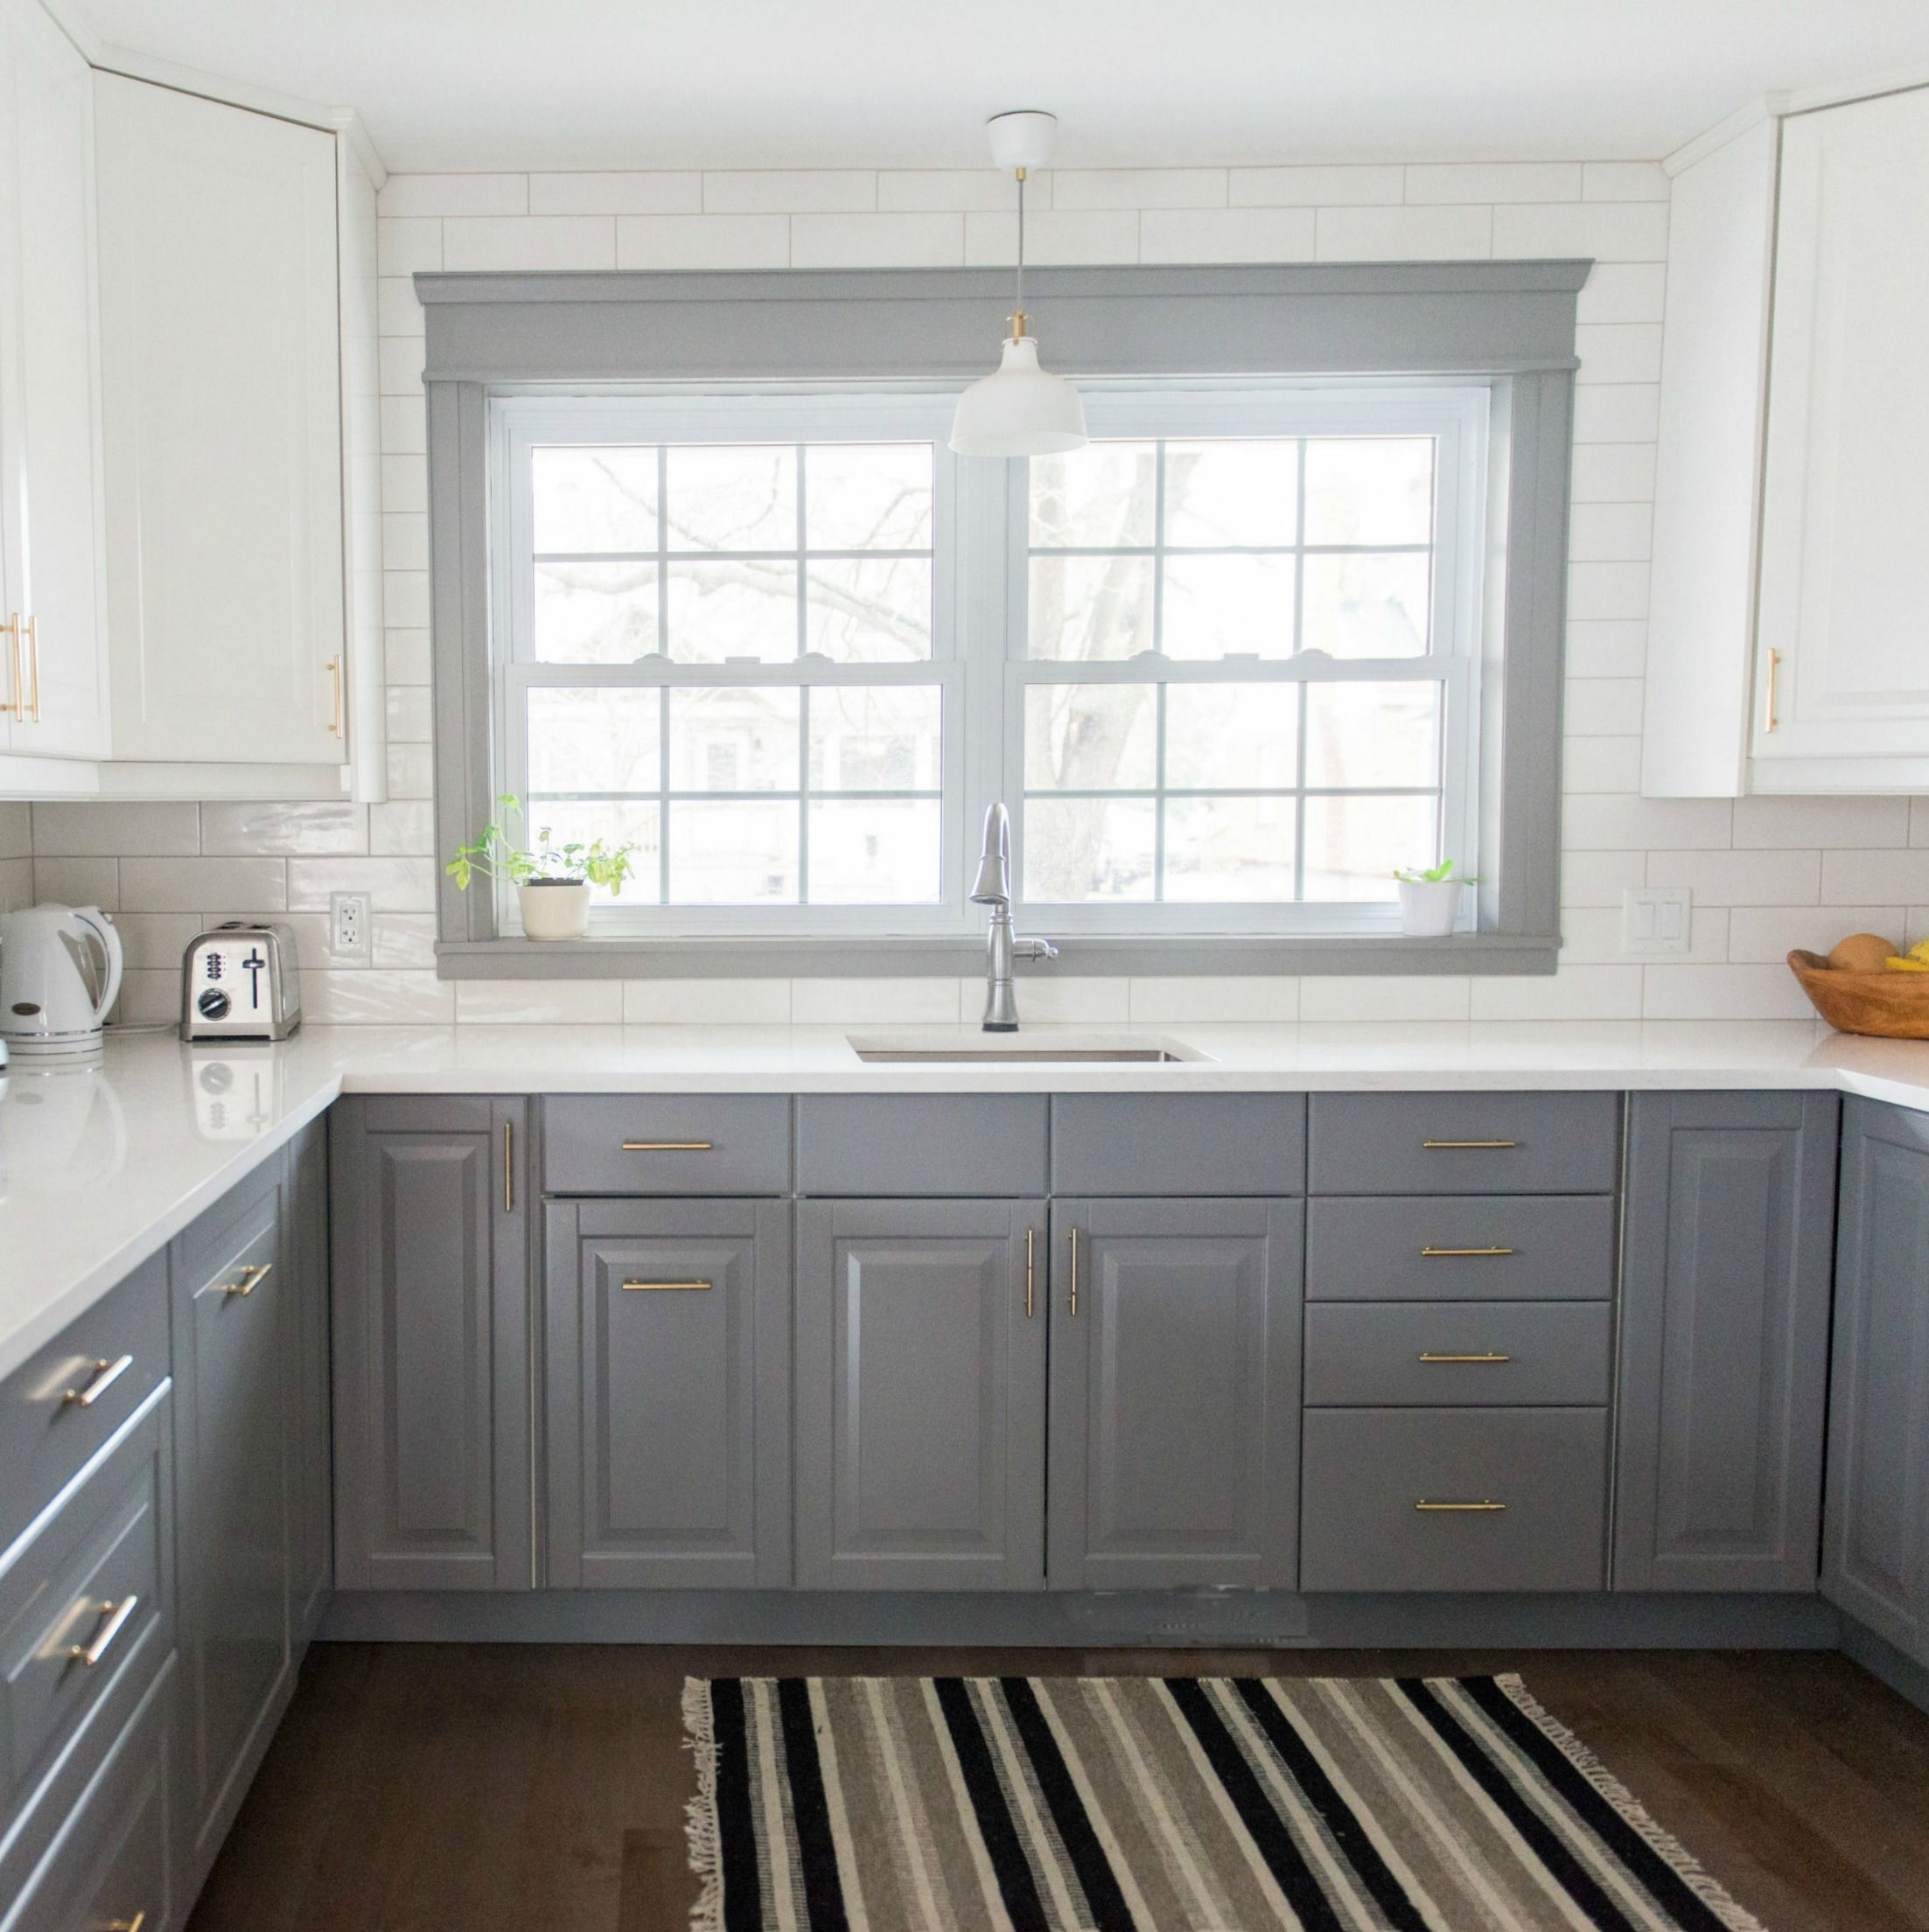 White Kitchen Cabinets With Gray Countertops: A Gray And White IKEA Kitchen Transformation